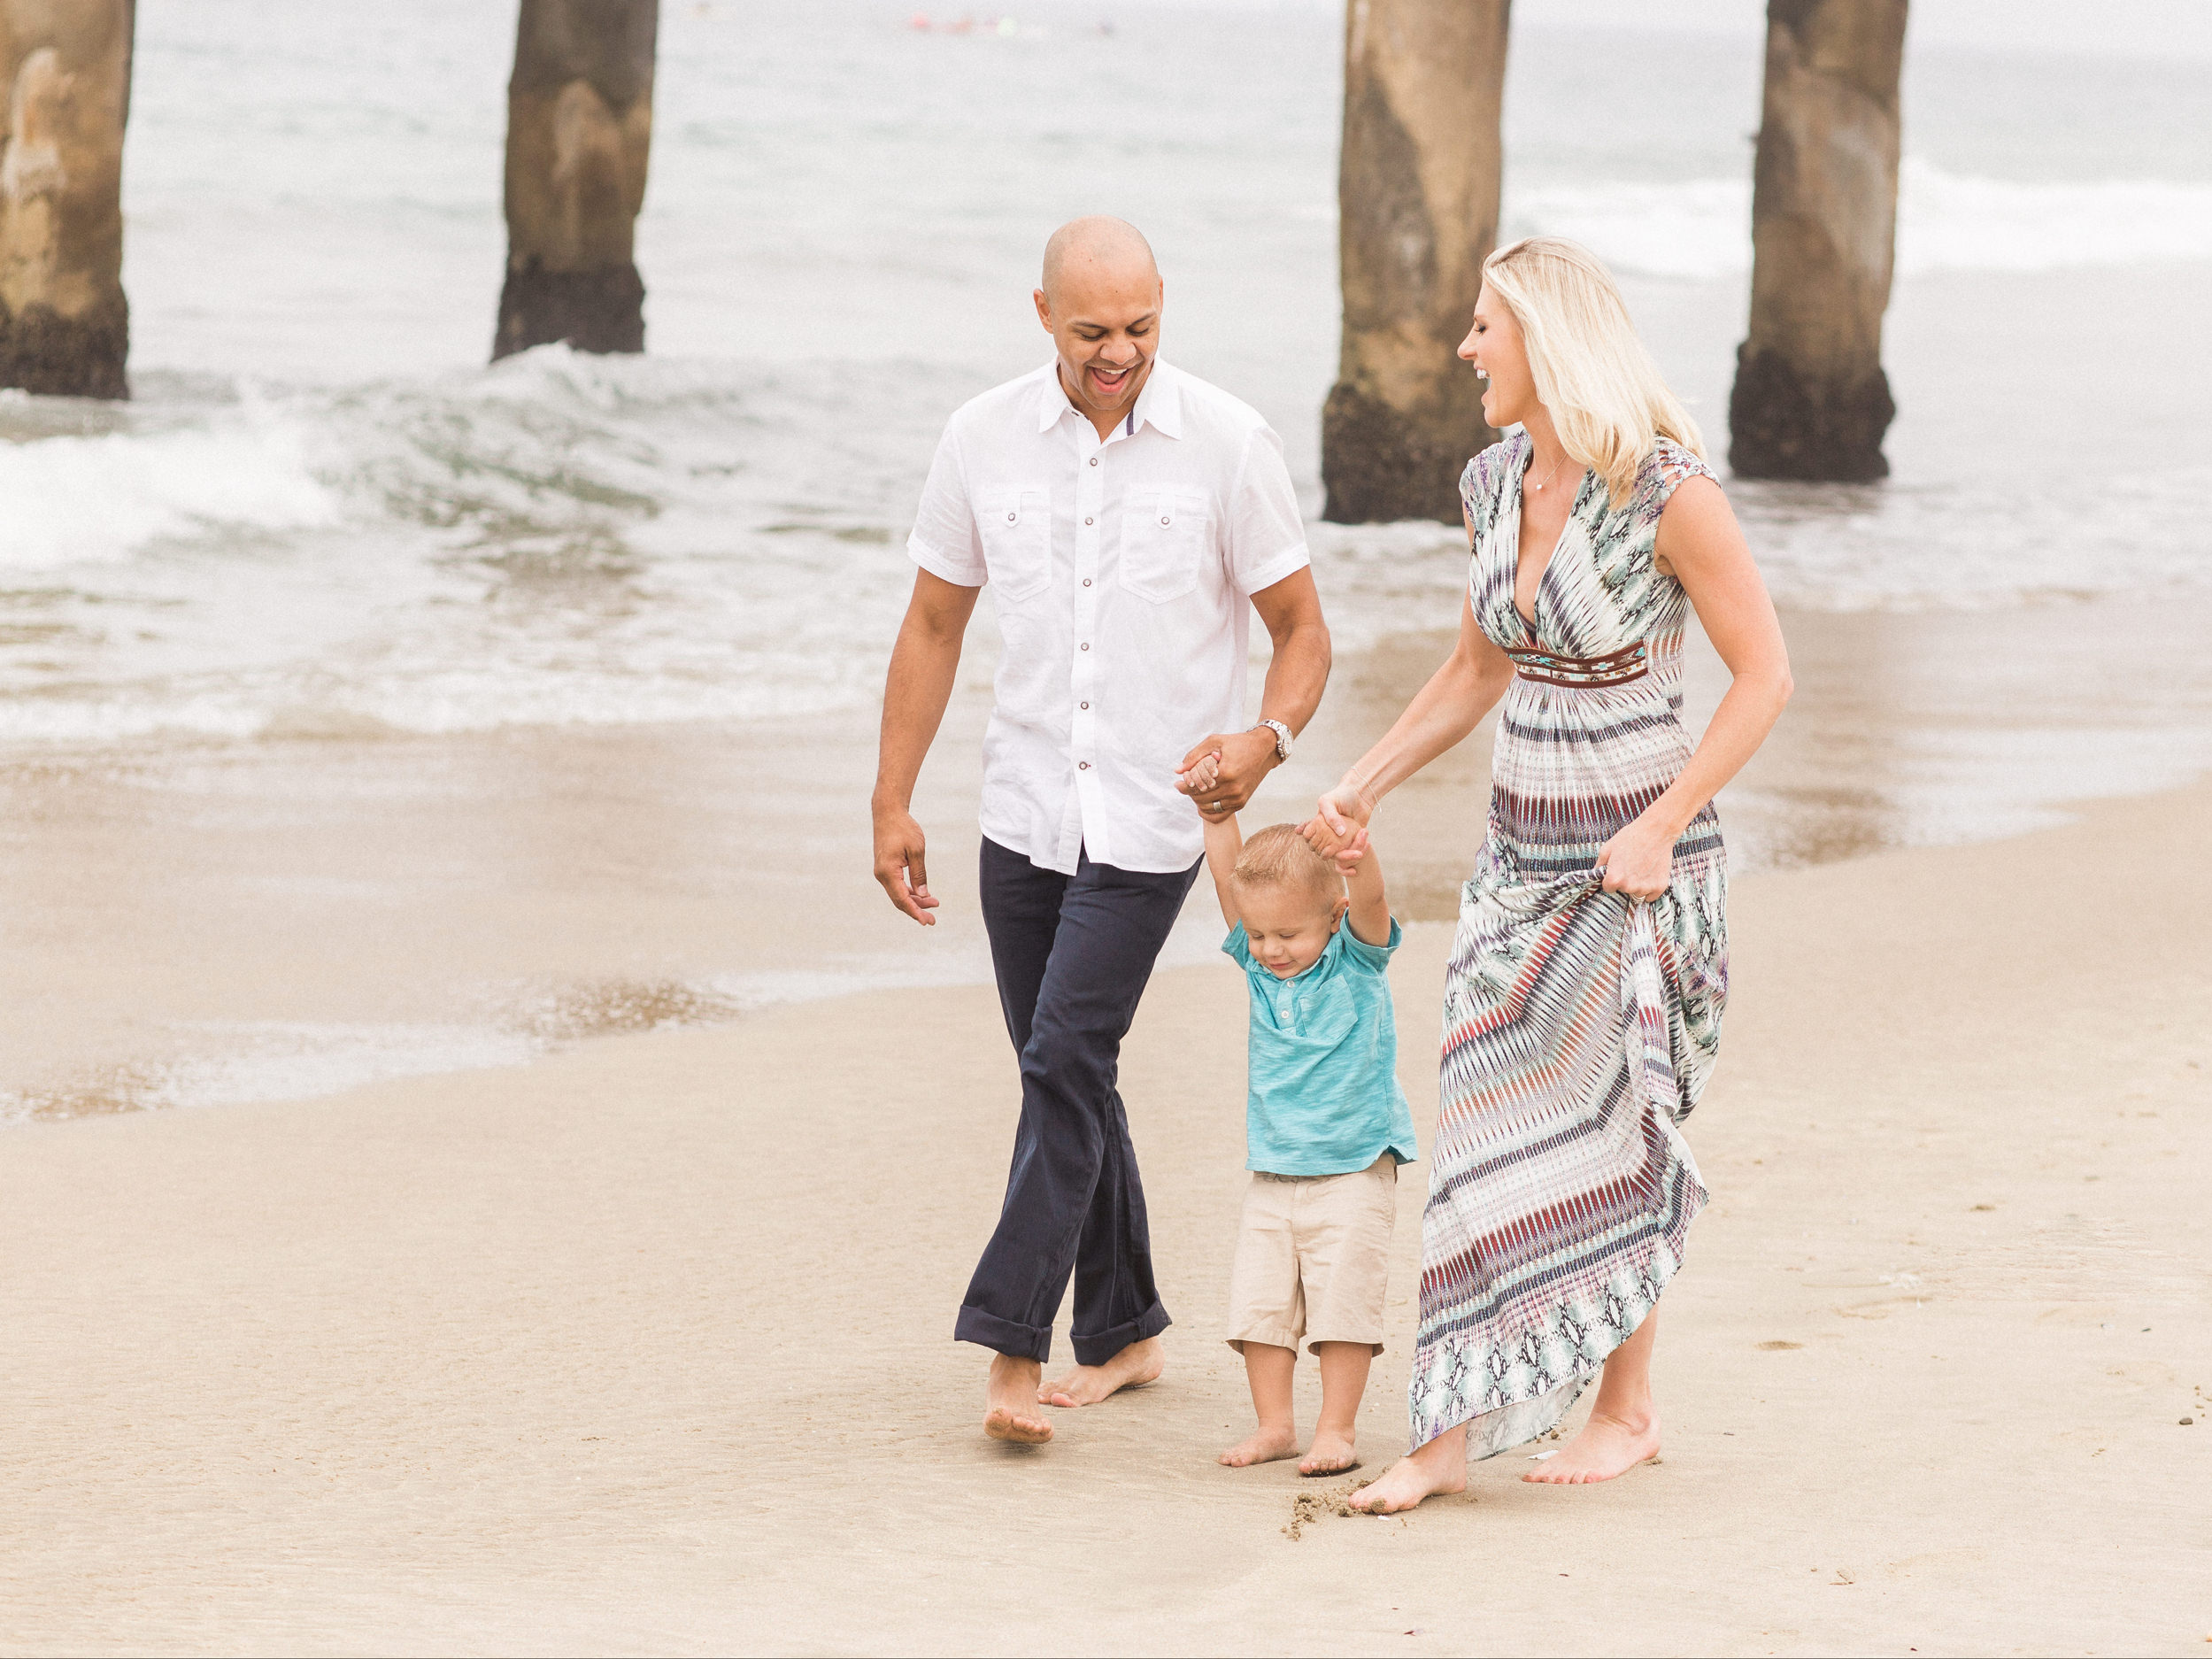 Manhattan Beach Krishnan Family Portrait Photography Session from South Bay family and wedding portrait photography business Daniel Doty Photography.